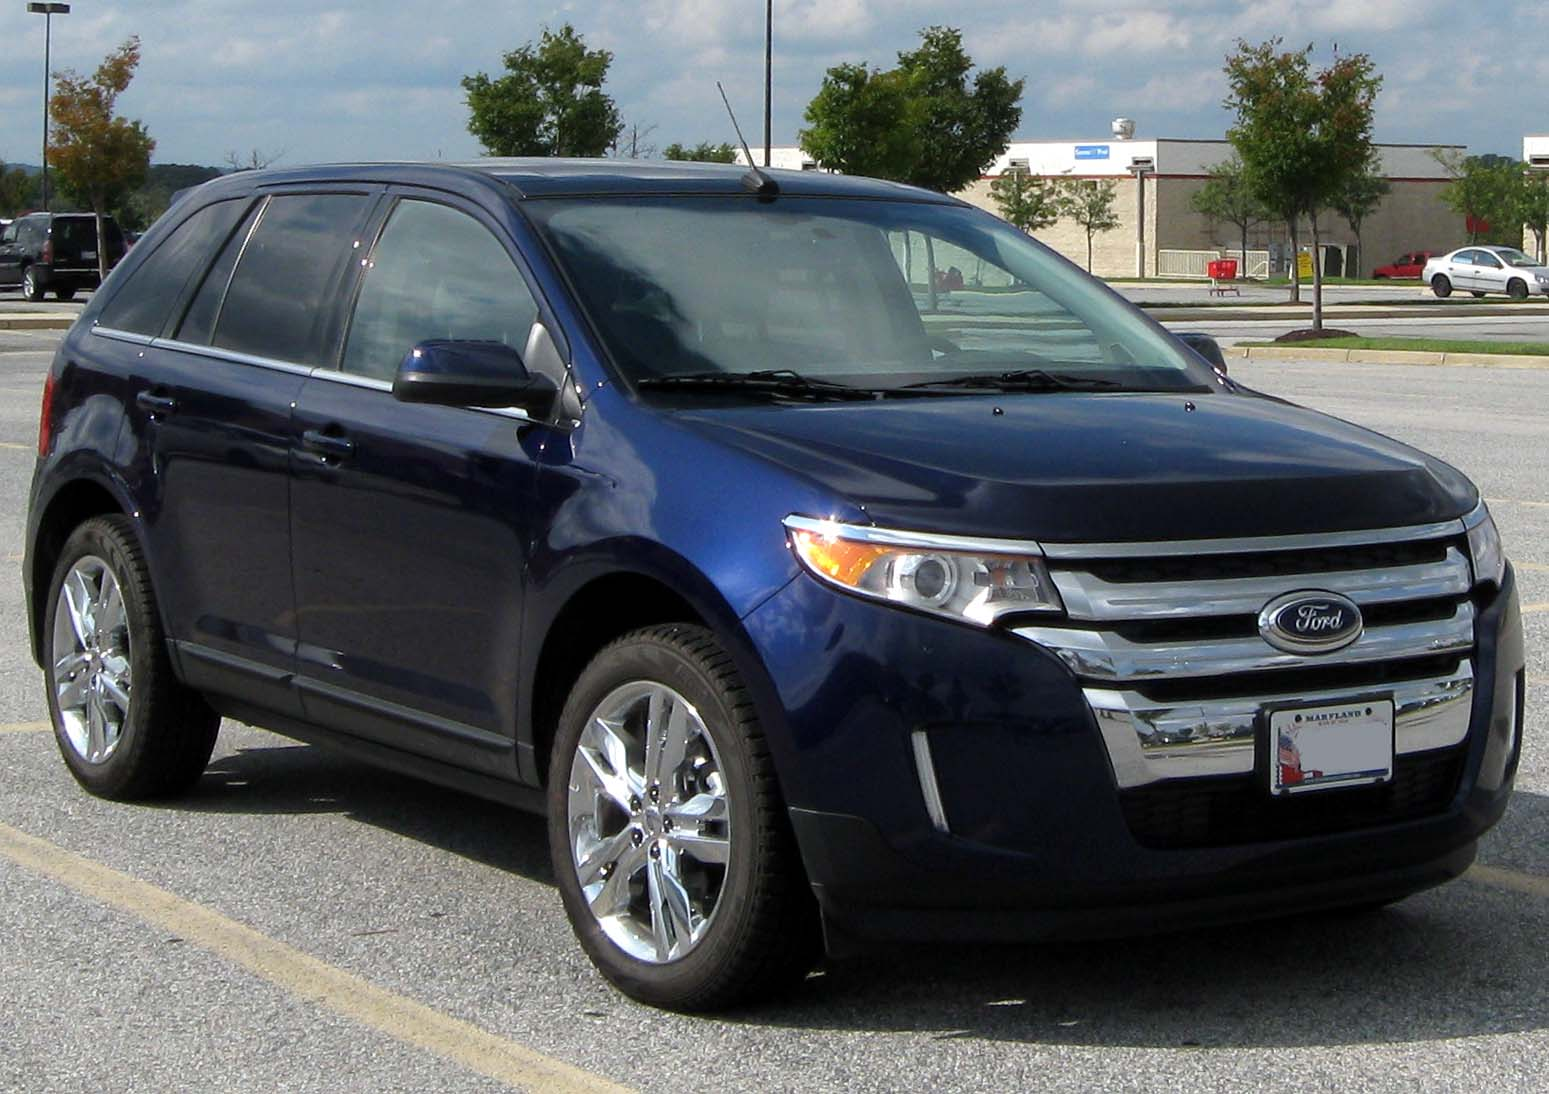 Ford edge 2014 wikipedia ganador